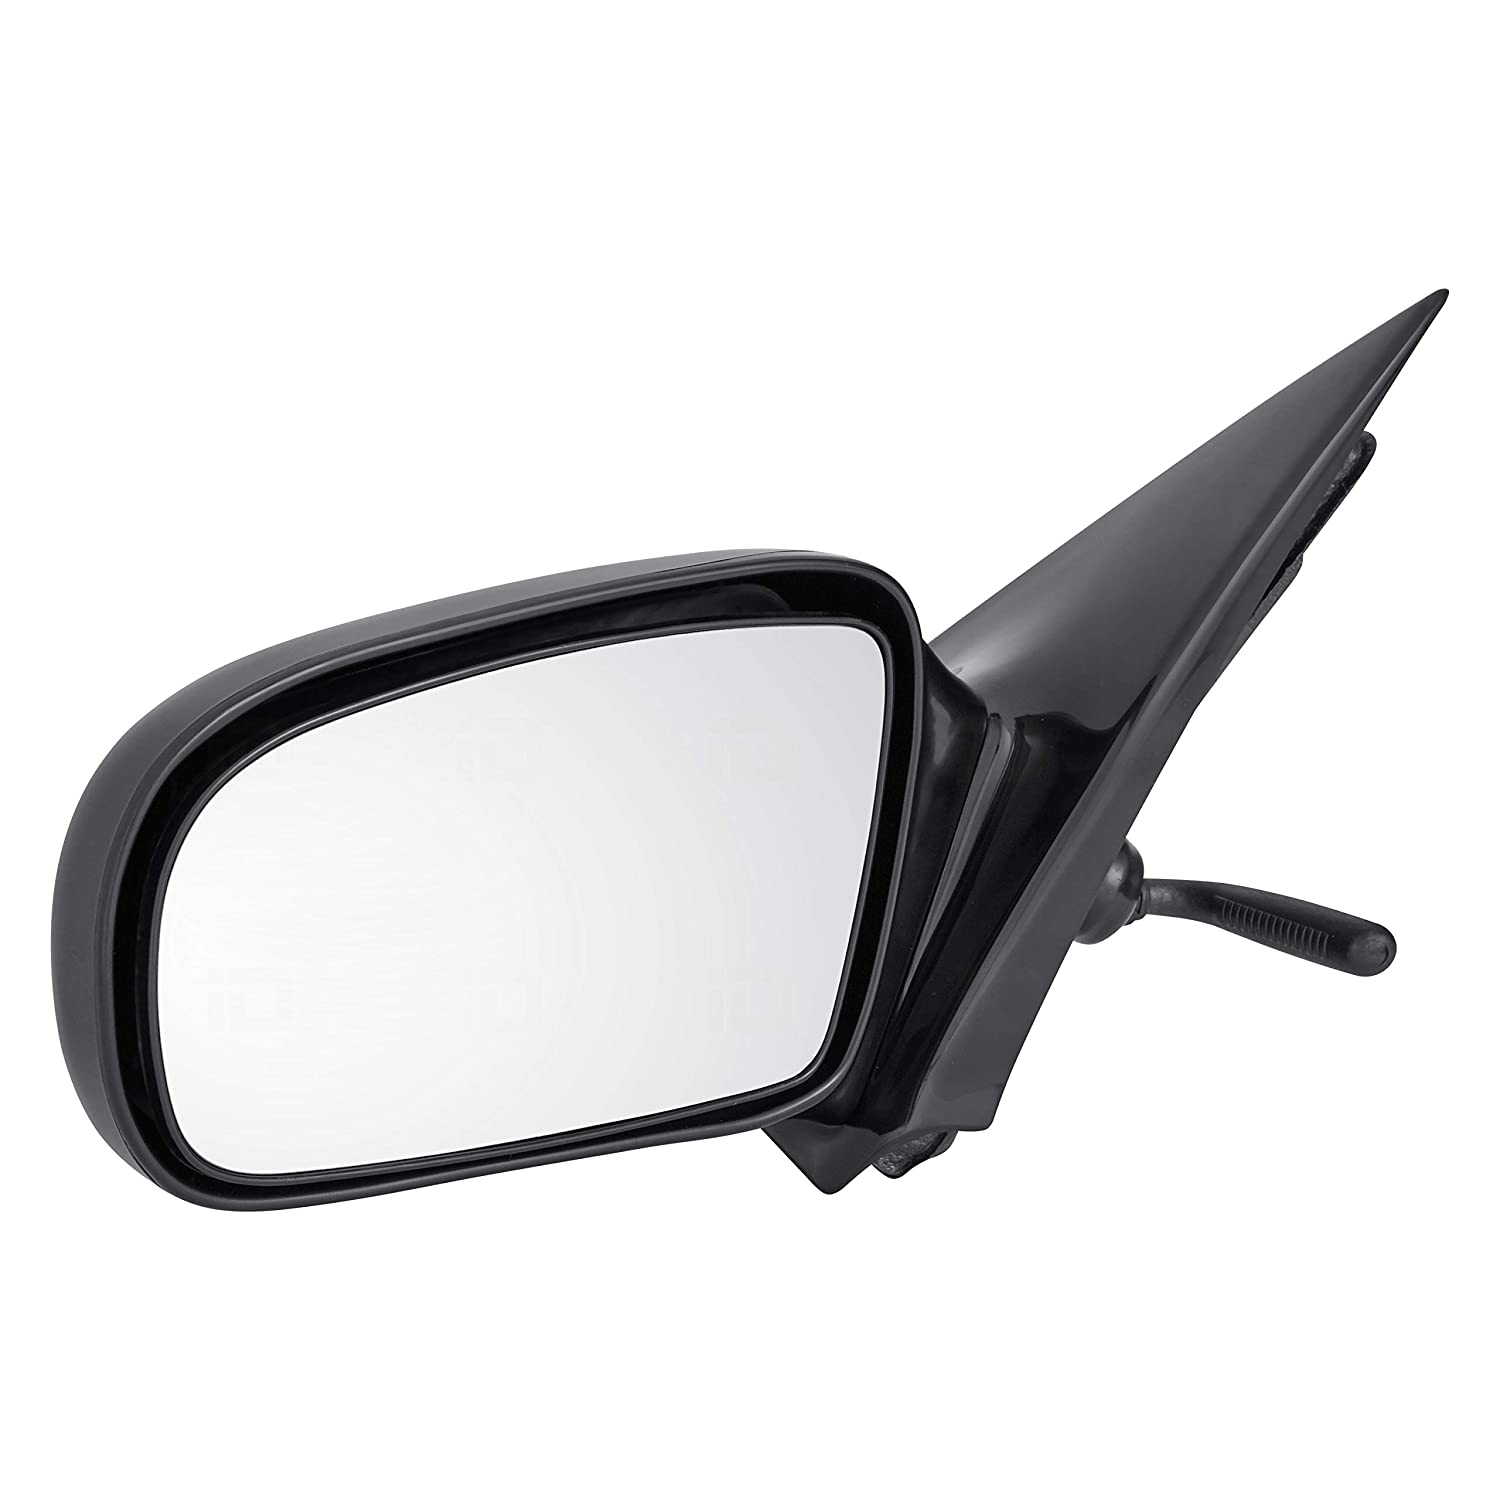 for 1995-2005 Chevrolet Chevy Cavalier GM1321168 Manual Pontiac Sunfire Sedan Non-Heated Roane Concepts Replacement Right Passenger Side Door Mirror